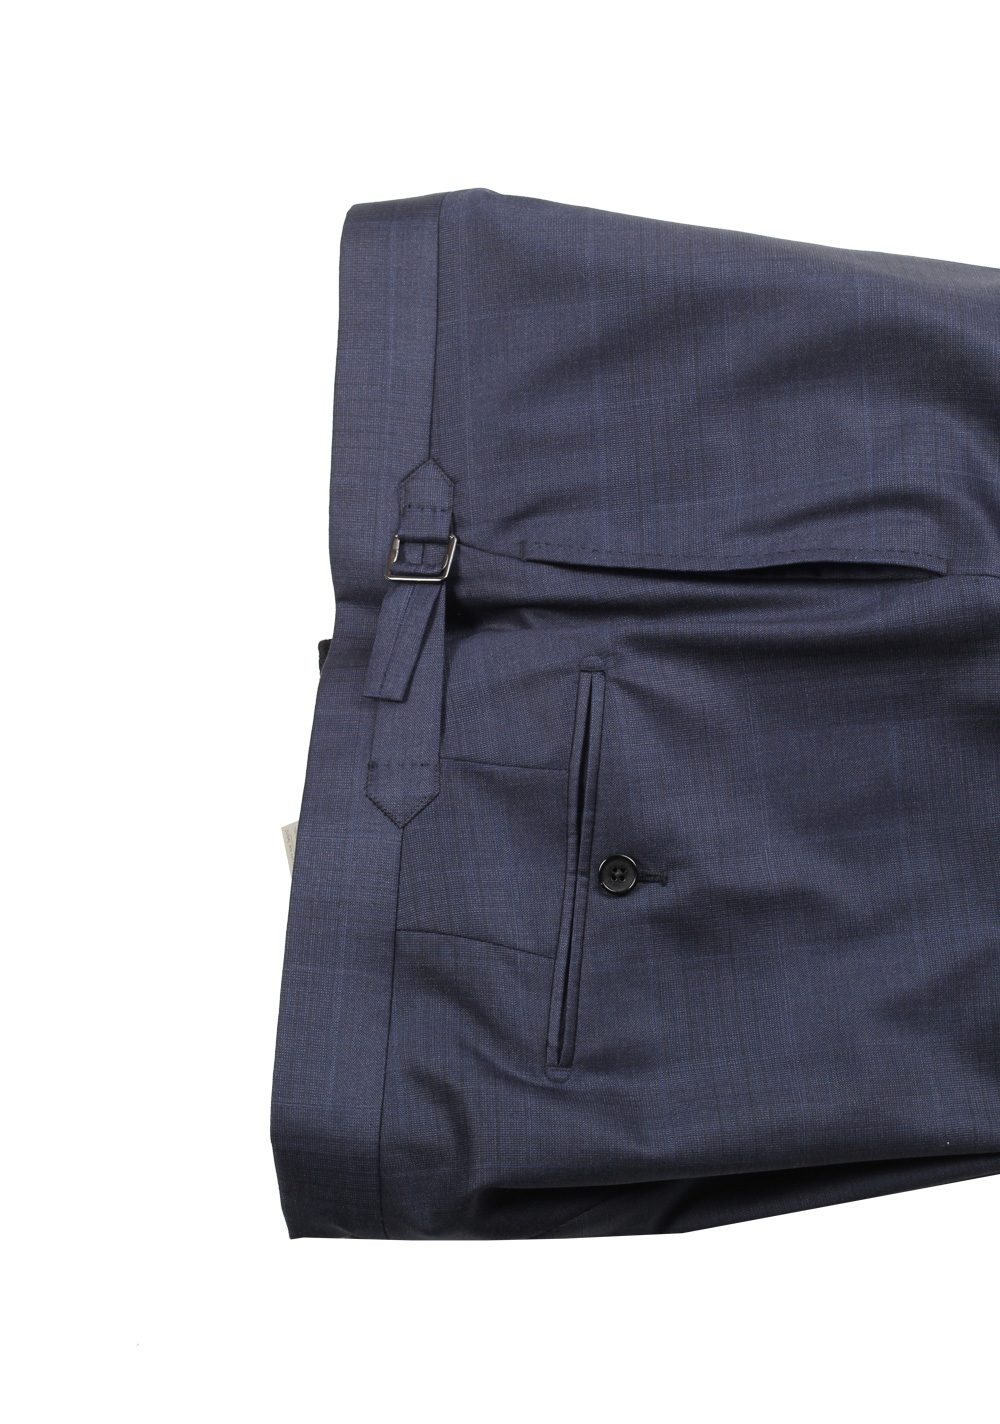 TOM FORD O'Connor Blue Checked 3 Piece Suit Size 56 46R